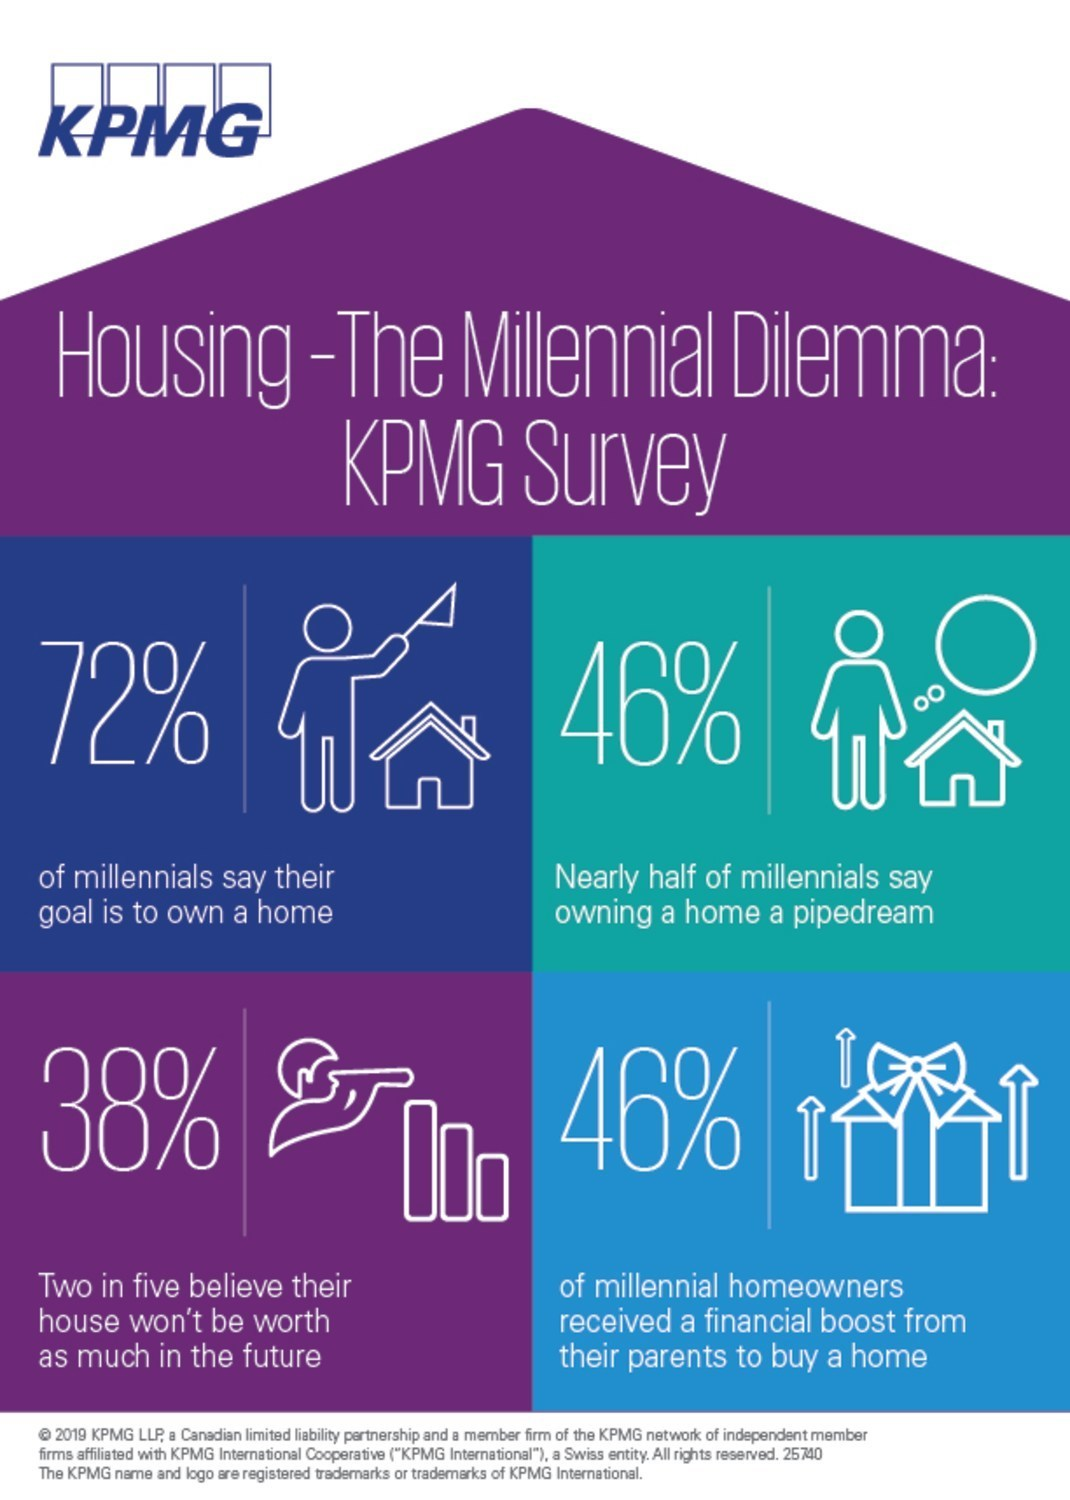 https://mma.prnewswire.com/media/1039960/KPMG_LLP_Owning_a_home_is_becoming_a_pipedream_for_many_millenni.jpg?p=publish